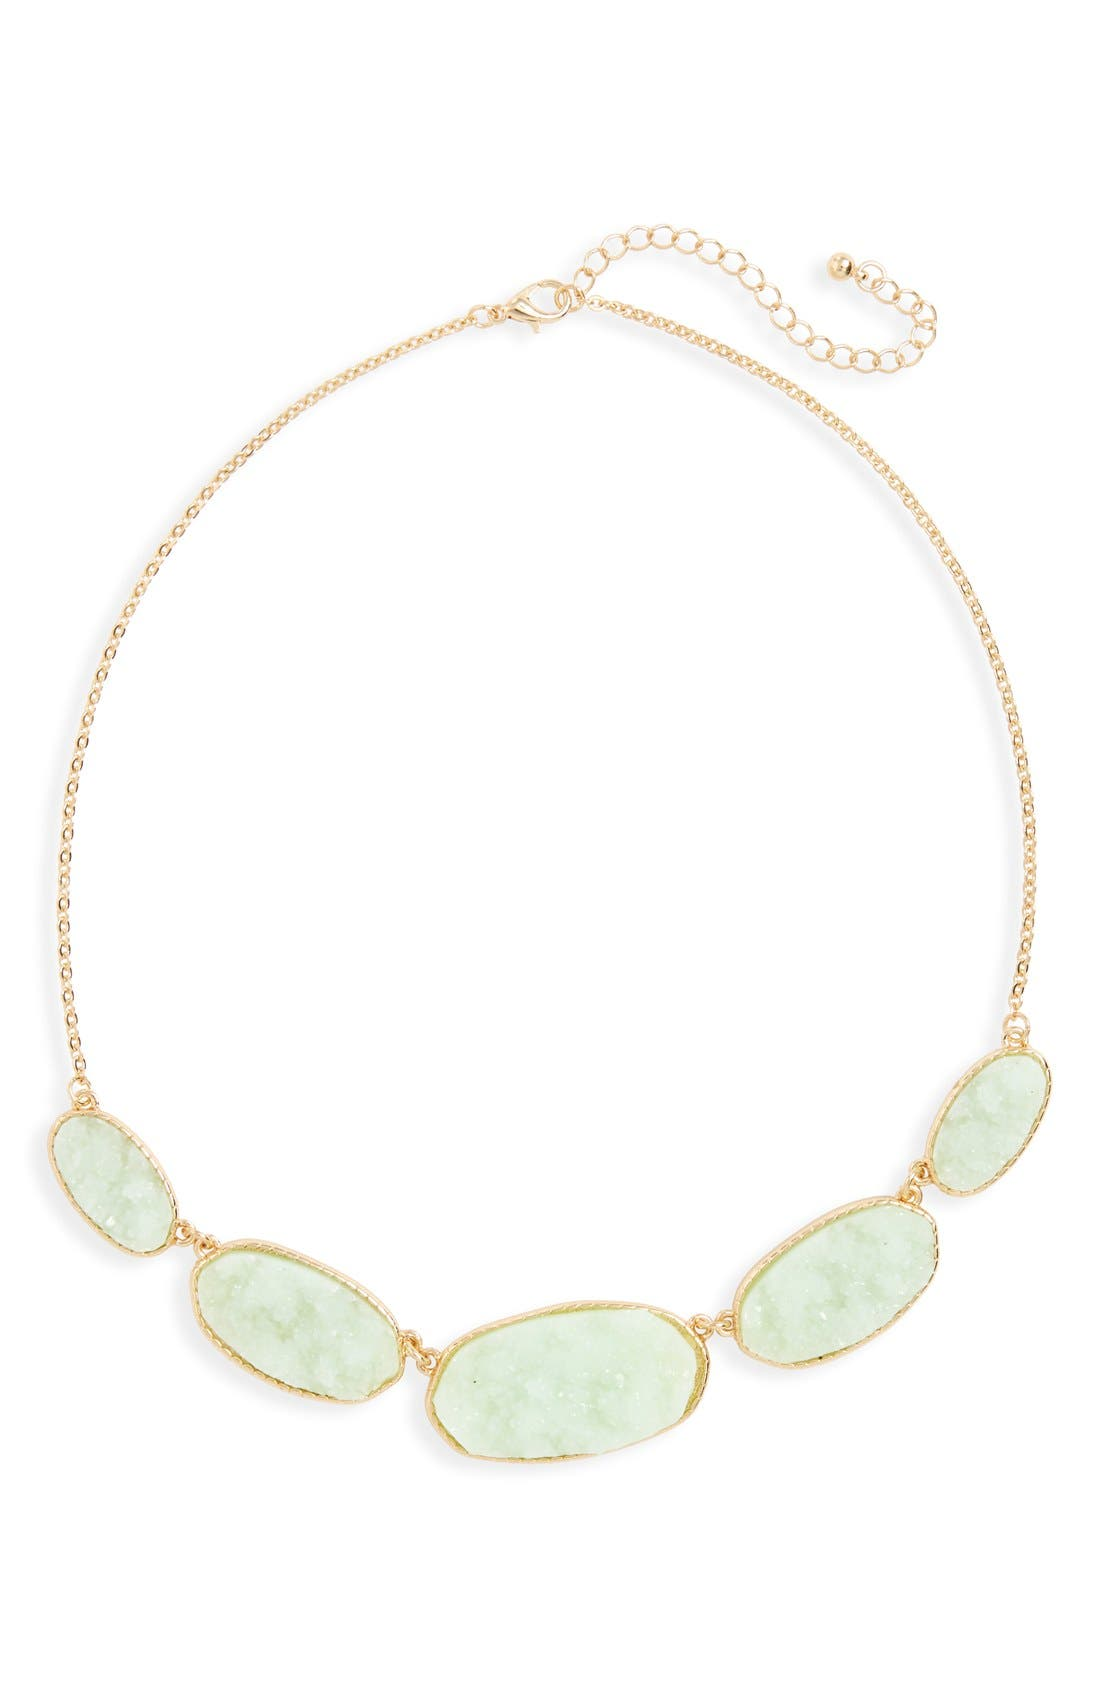 Alternate Image 1 Selected - BP. Drusy Stone Statement Necklace